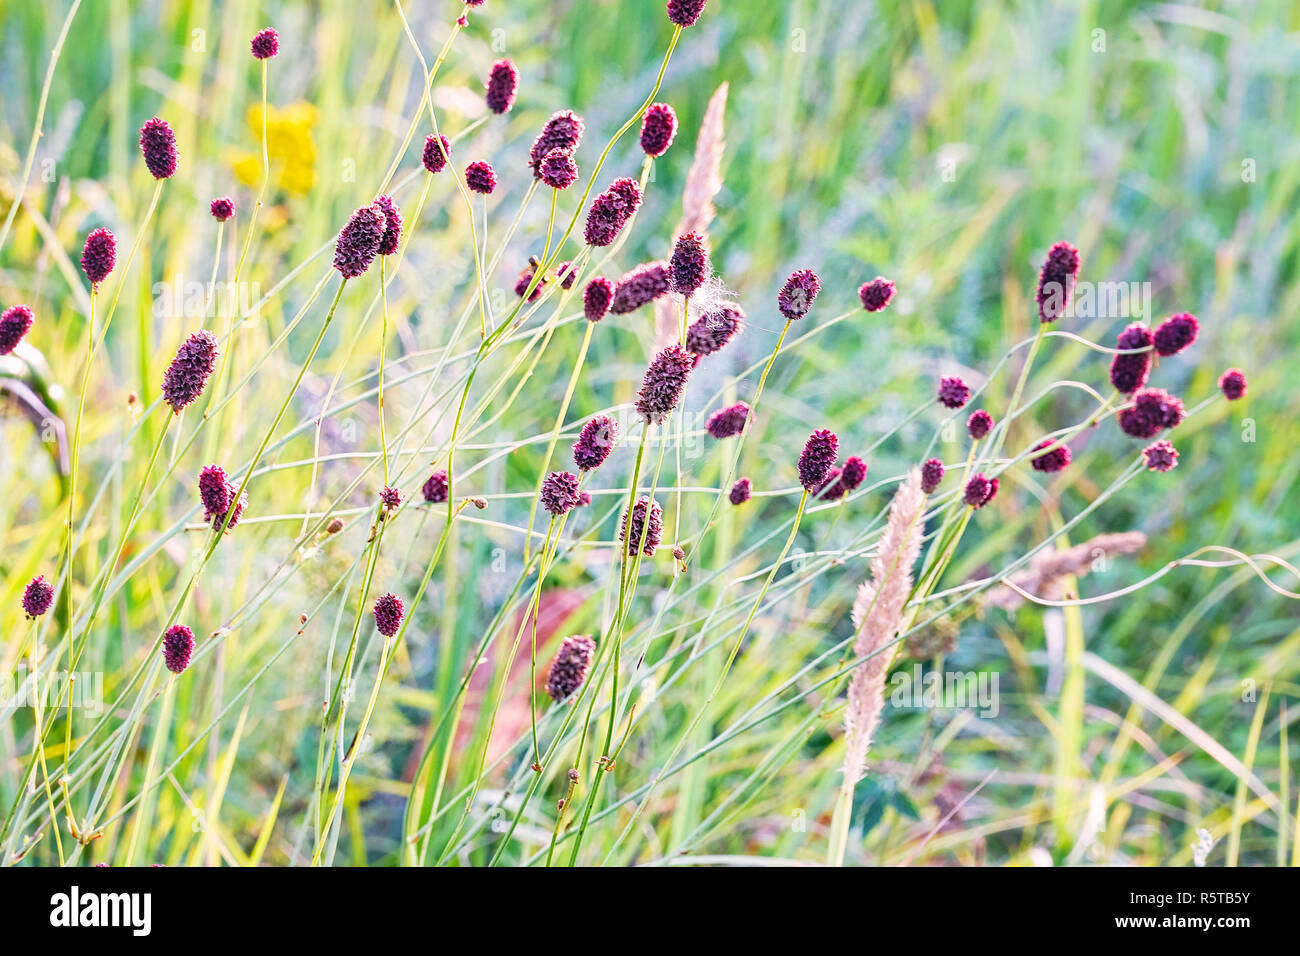 Blooming flowers of Burnet on the natural background in the meadow - Stock Image